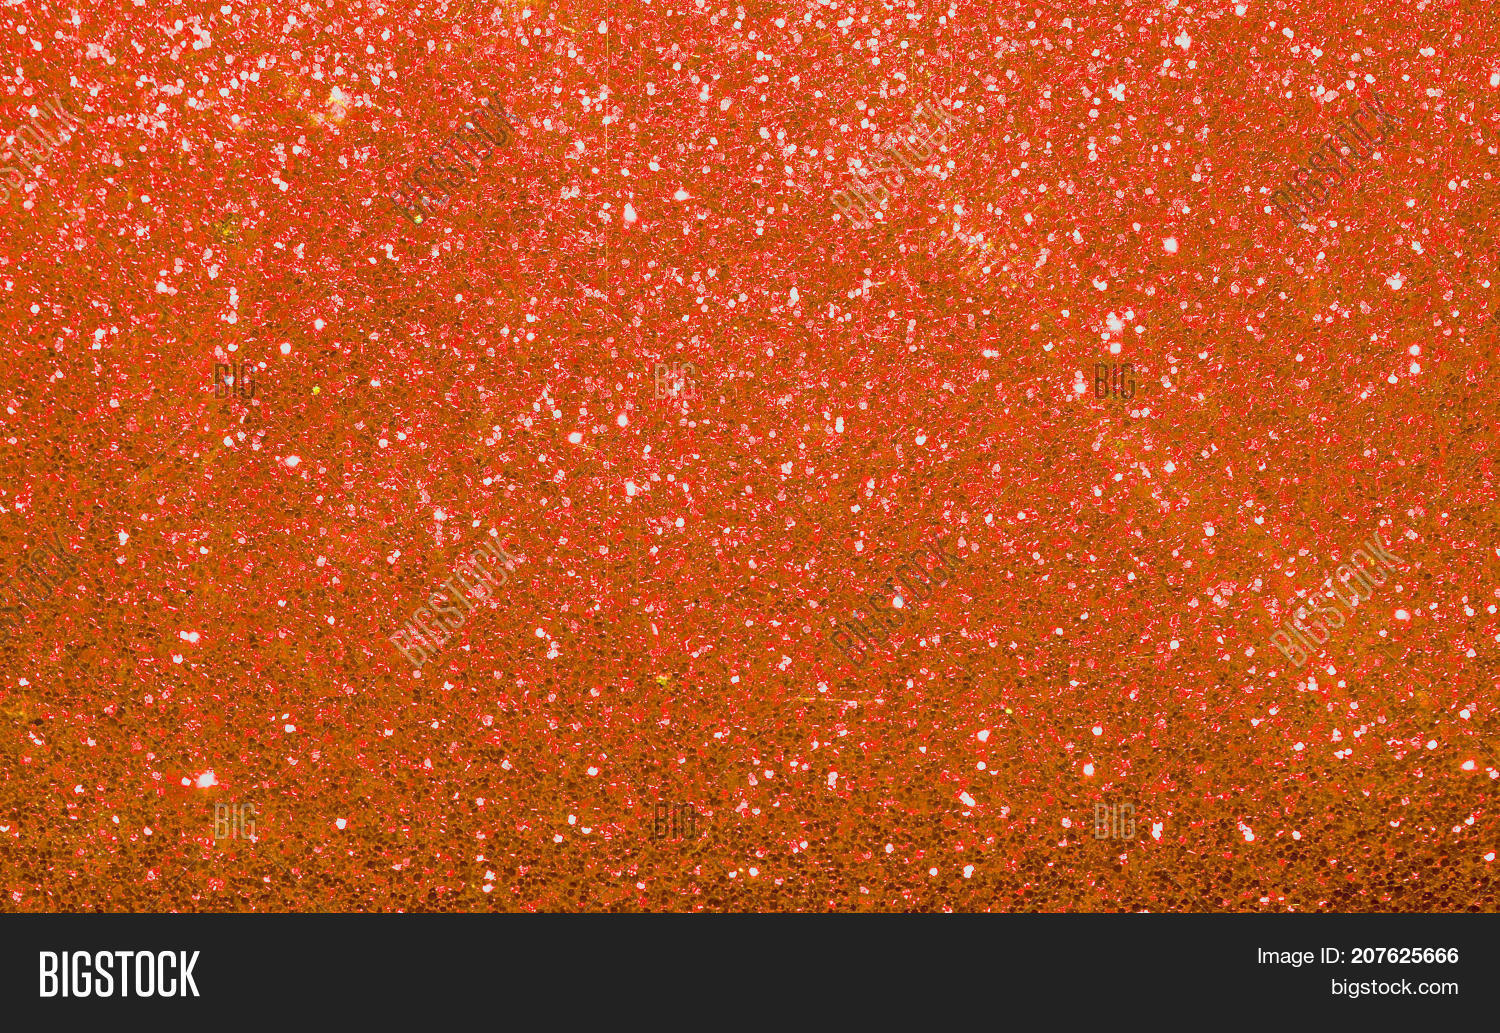 Sparkle Glitter And Shine Of Orange Abstract Background Rustic Autumn Or Fall Theme Perfect